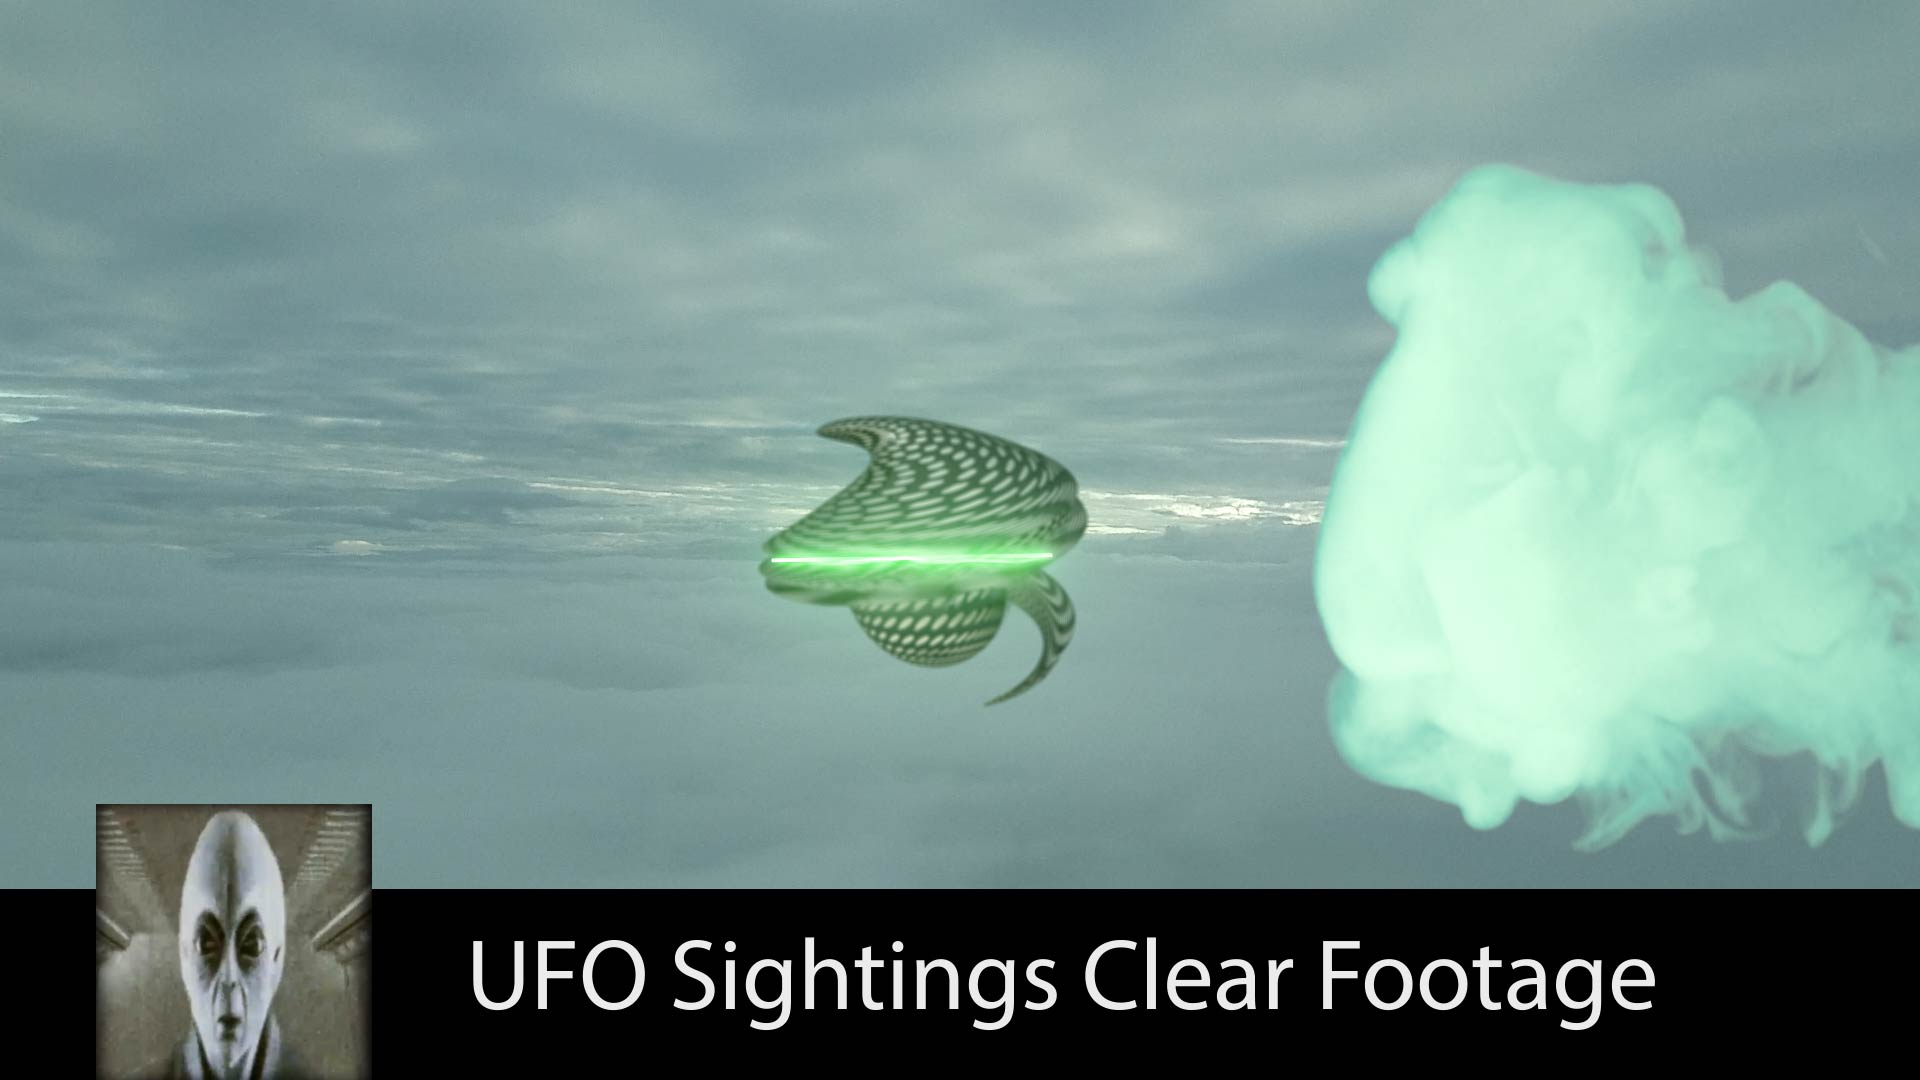 UFO Sightings Clear Footage November